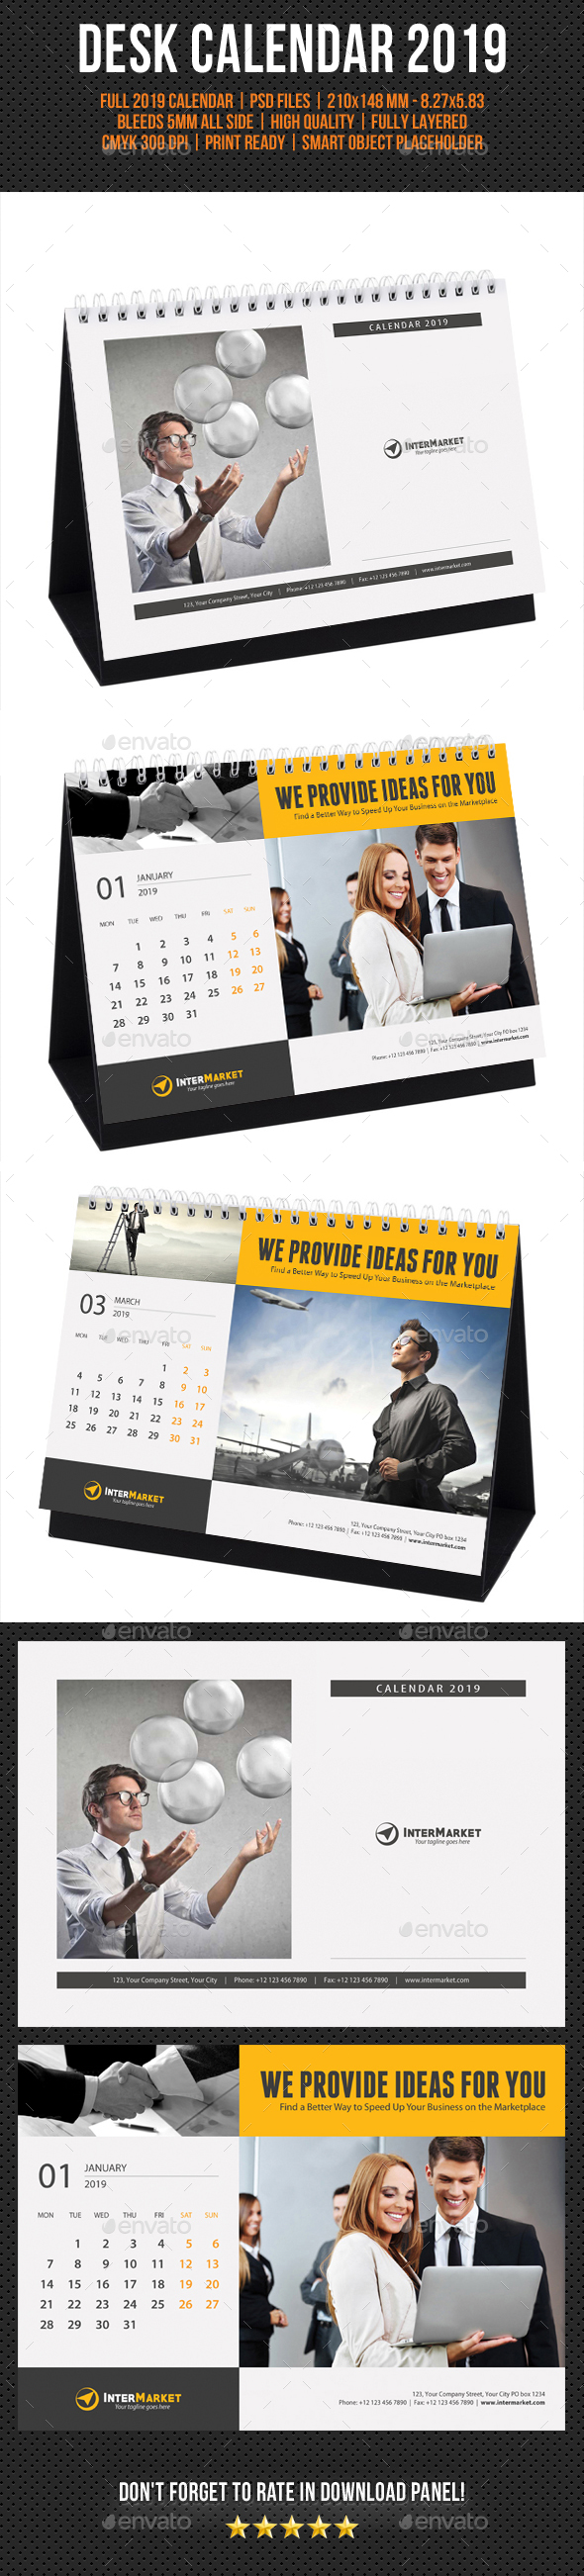 Corporate Desk Calendar 2019 - Calendars Stationery